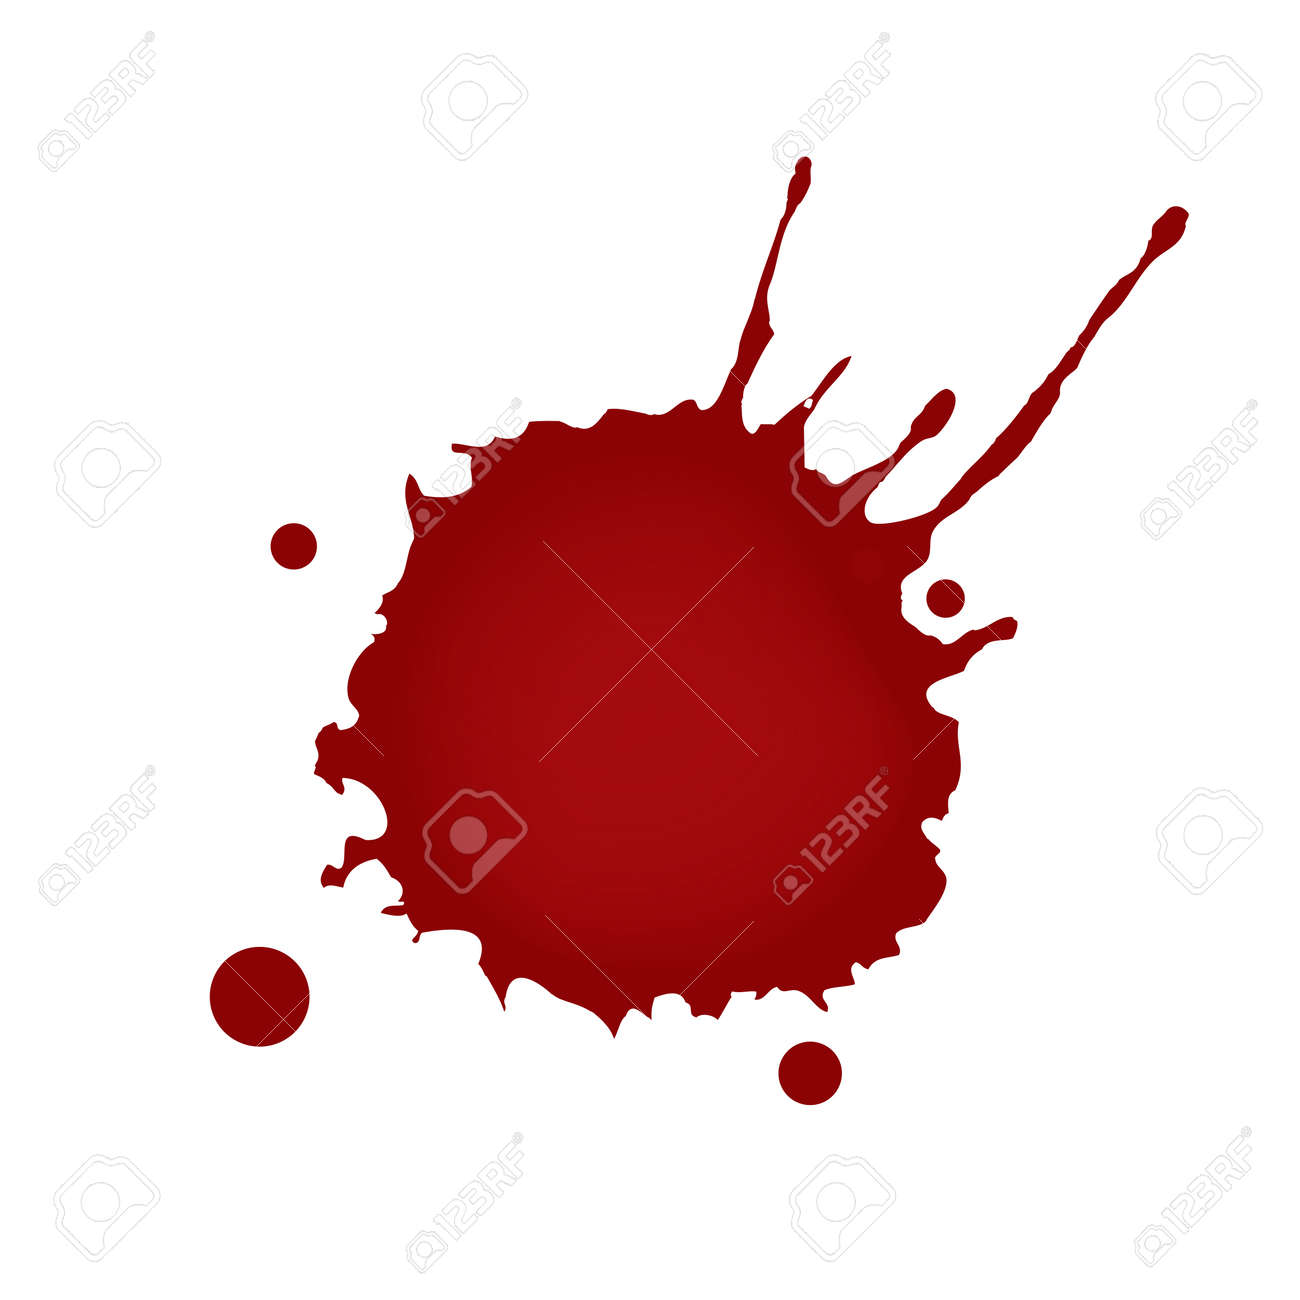 realistic blood splatters royalty free cliparts vectors and stock rh 123rf com blood splatter vector illustrator blood splatter vector free download